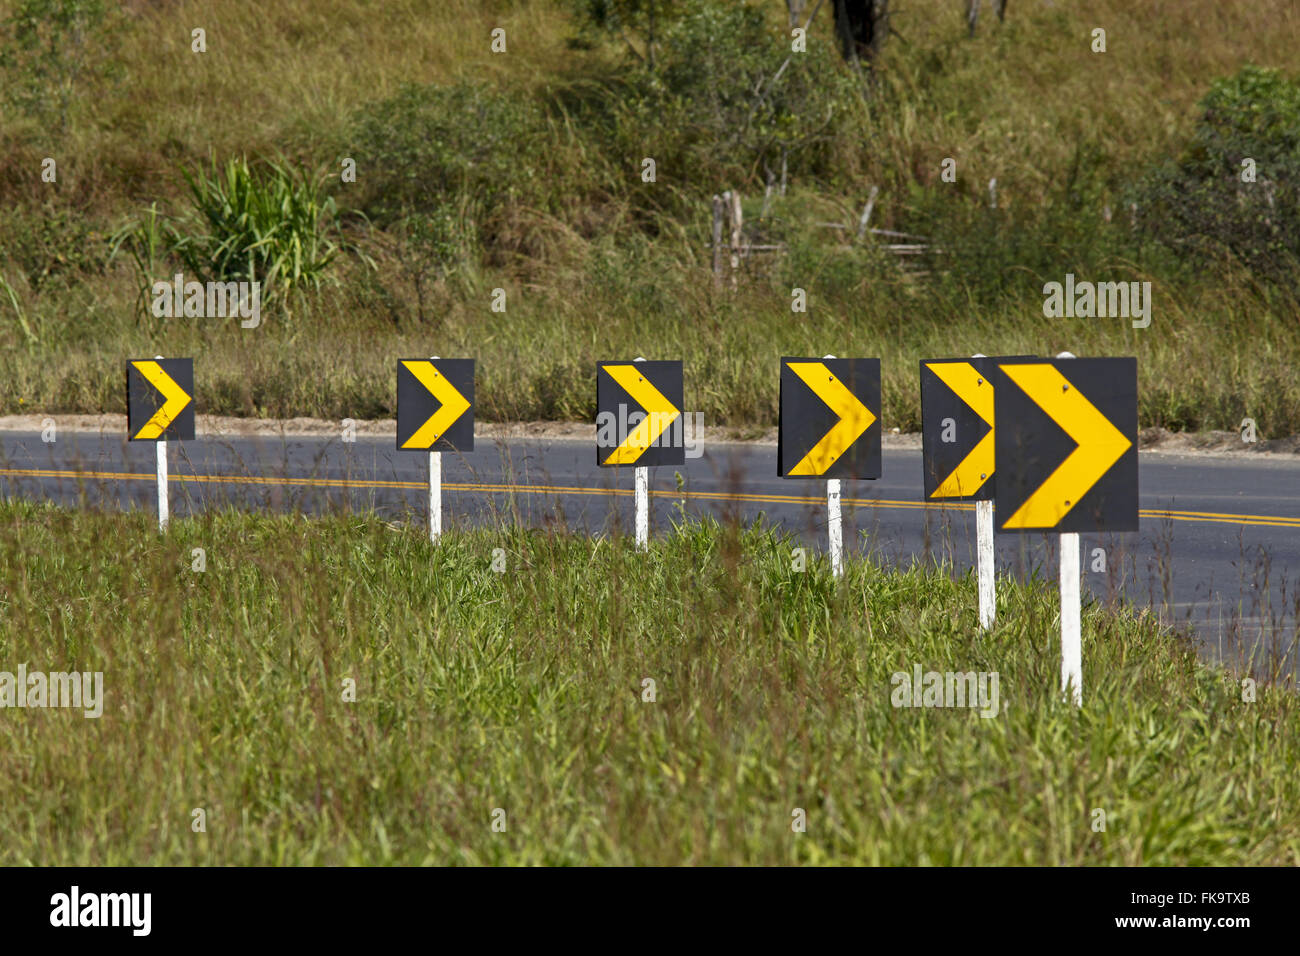 Signaling curve in the road carriageway - Stock Image